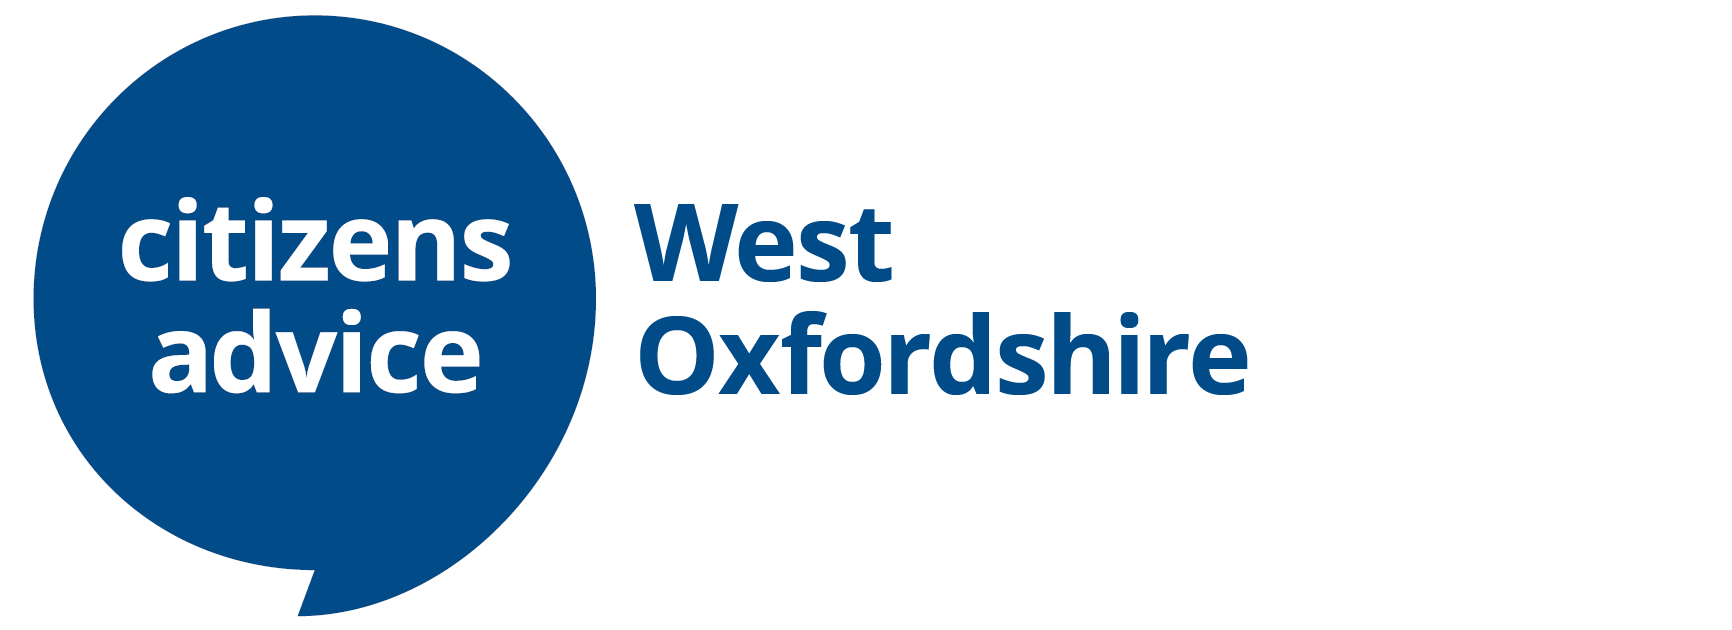 Citizens Advice West Oxfordshire logo